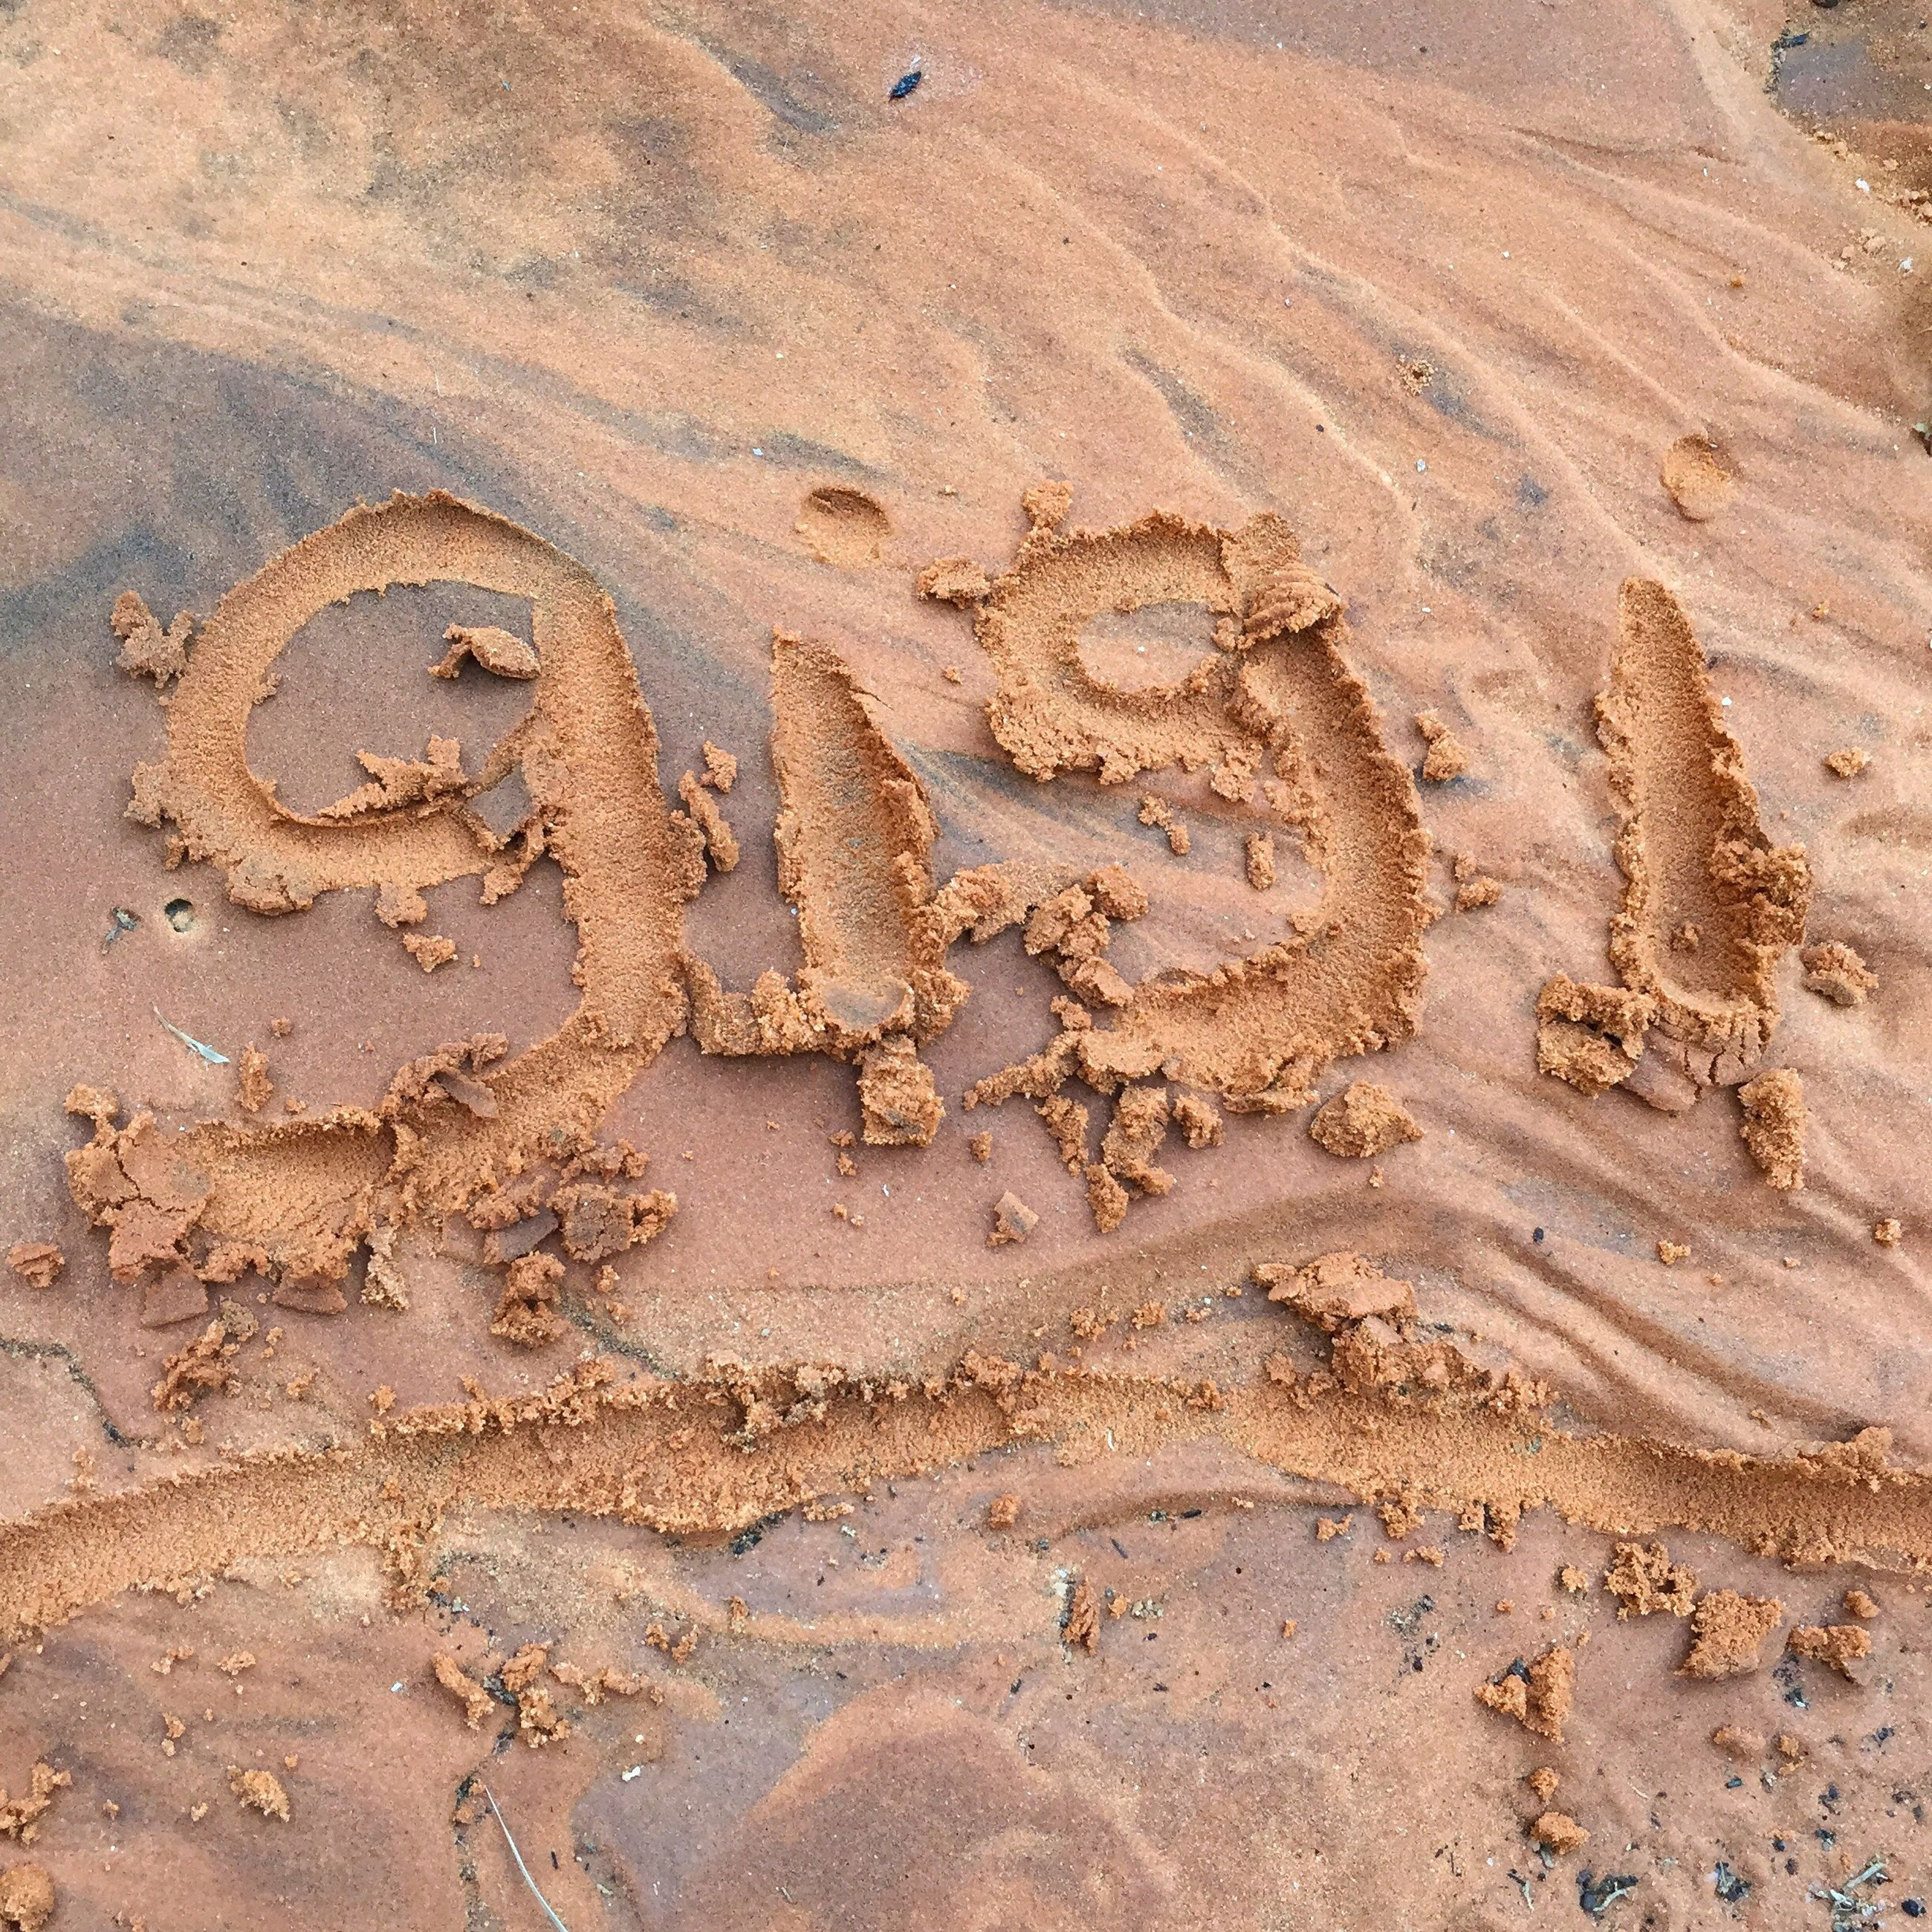 communication, text, western script, beach, sand, capital letter, backgrounds, full frame, footprint, high angle view, outdoors, symbol, message, memories, vacations, creativity, surface level, no people